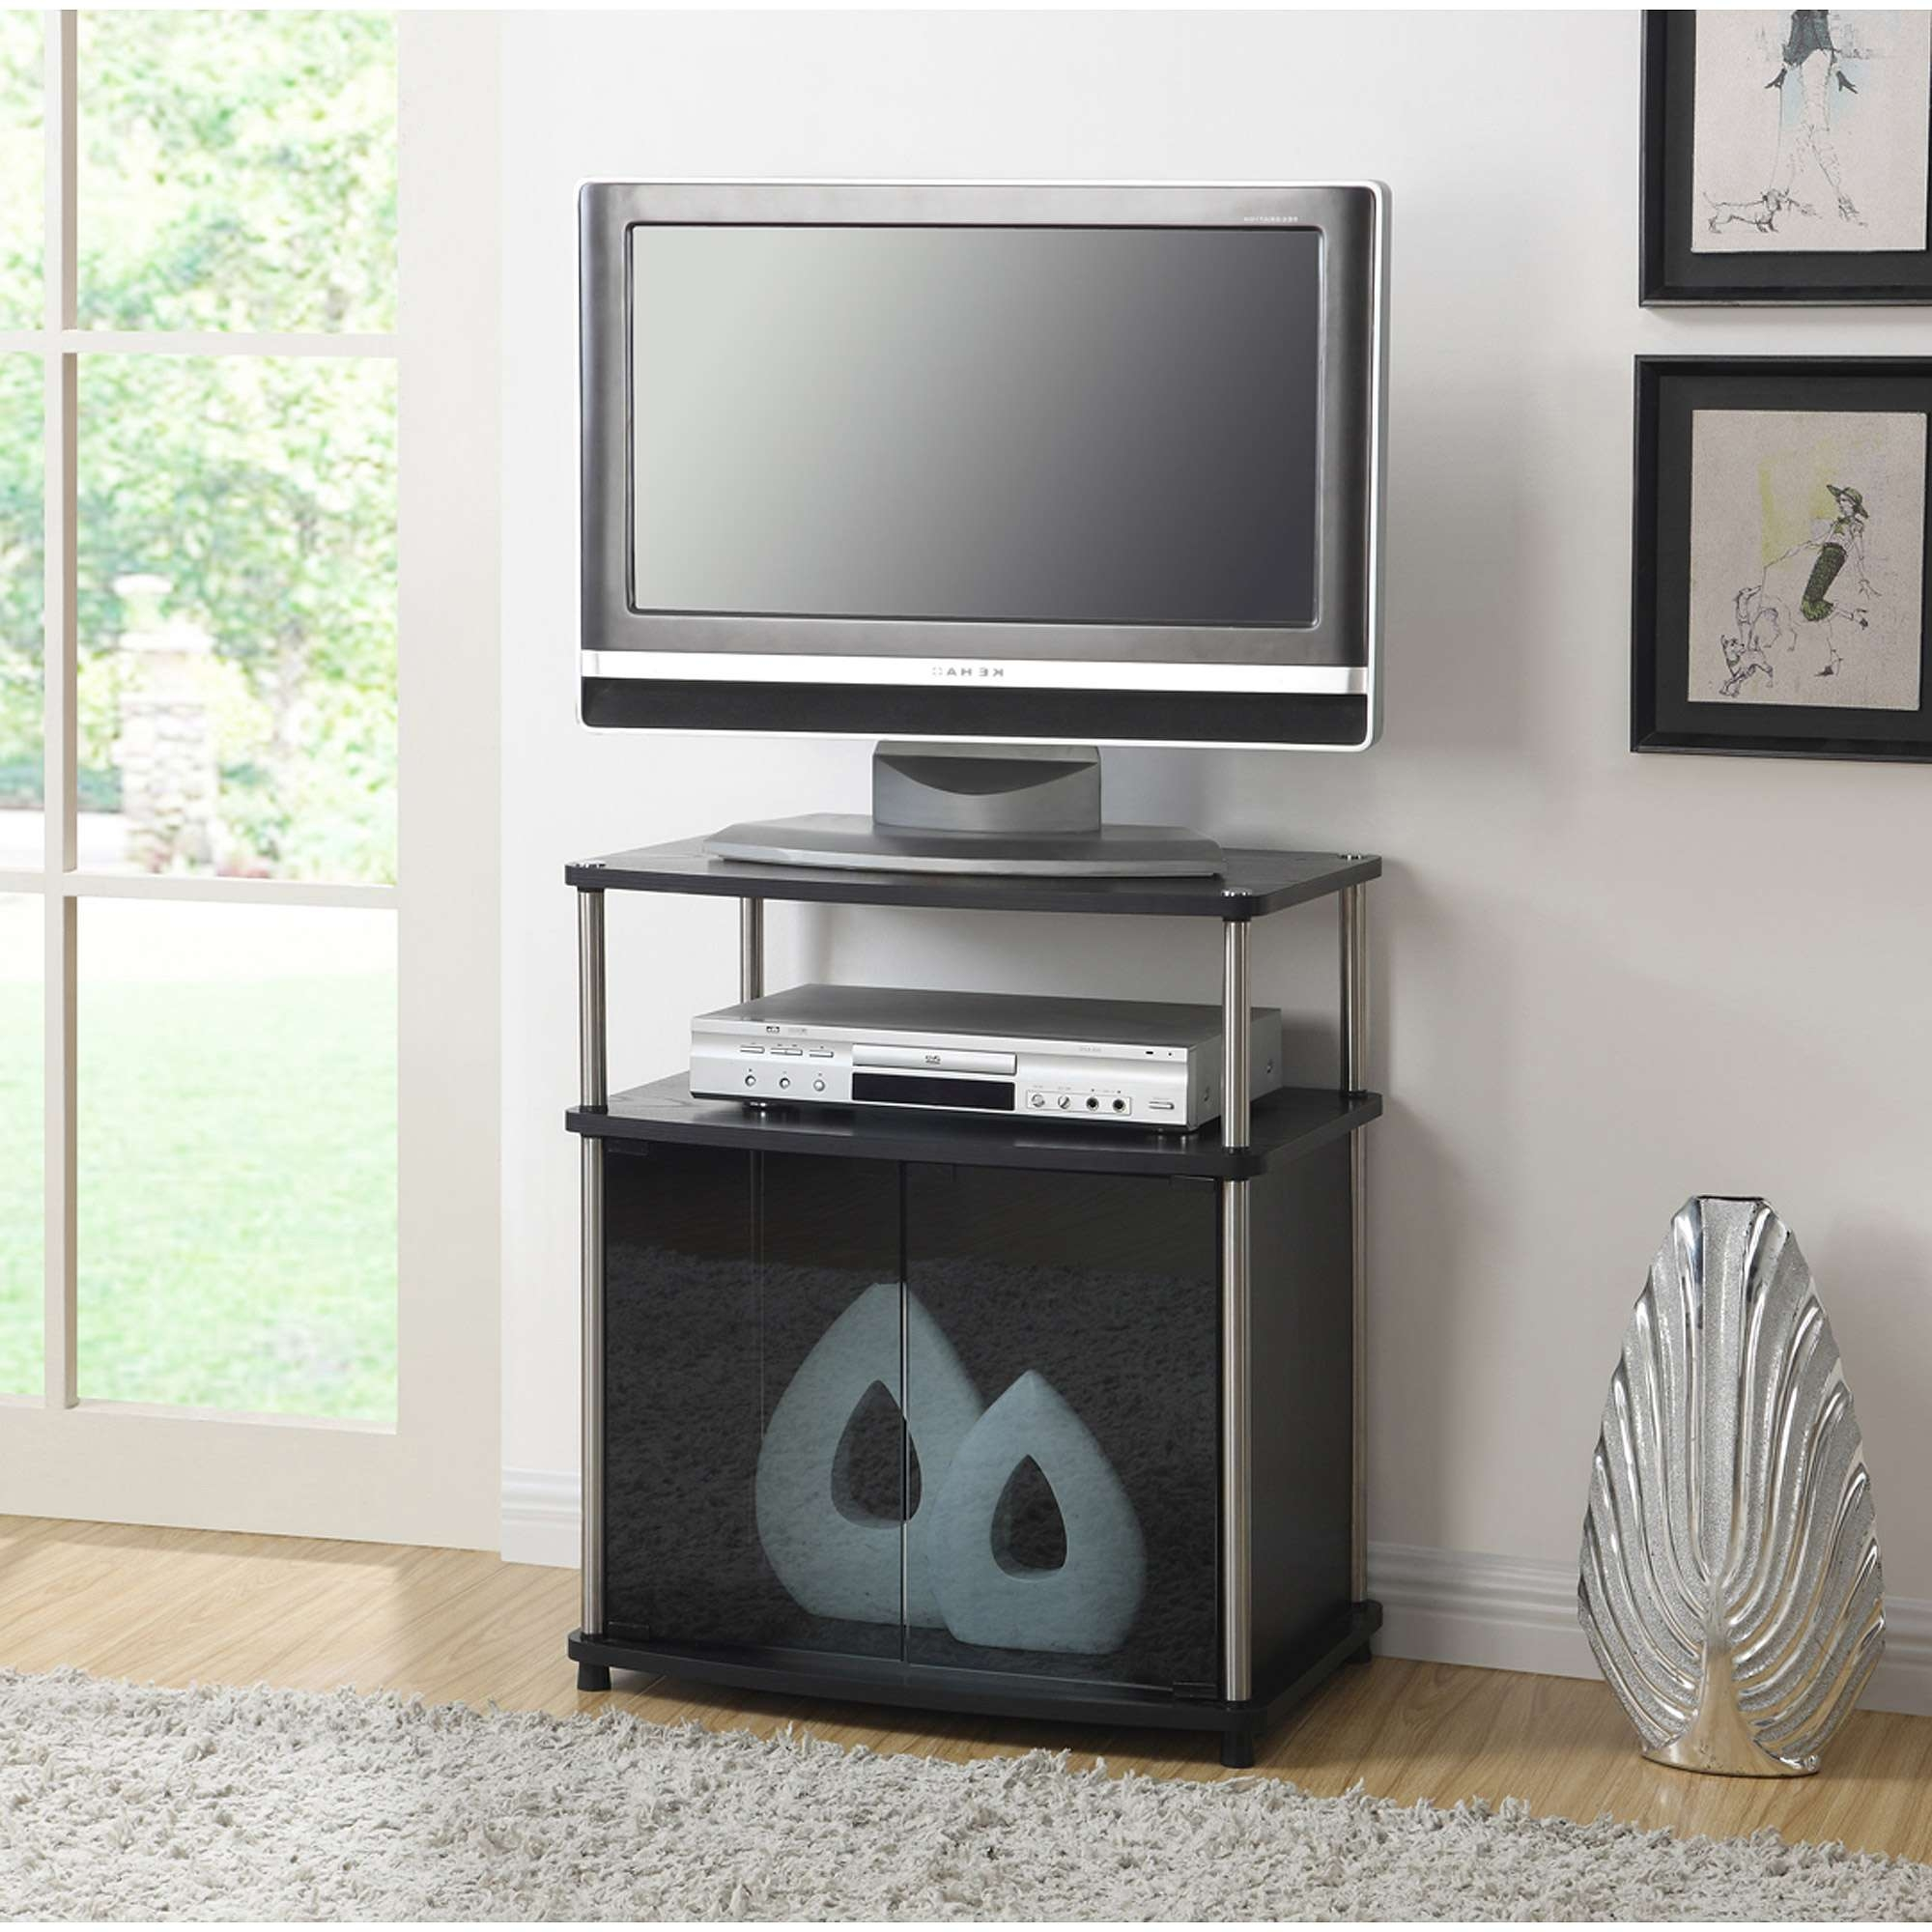 Tv : Bdua Amazing Tv Stands For Tube Tvs Amazon Com Furinno Dbr Bk With Elevated Tv Stands (View 9 of 15)